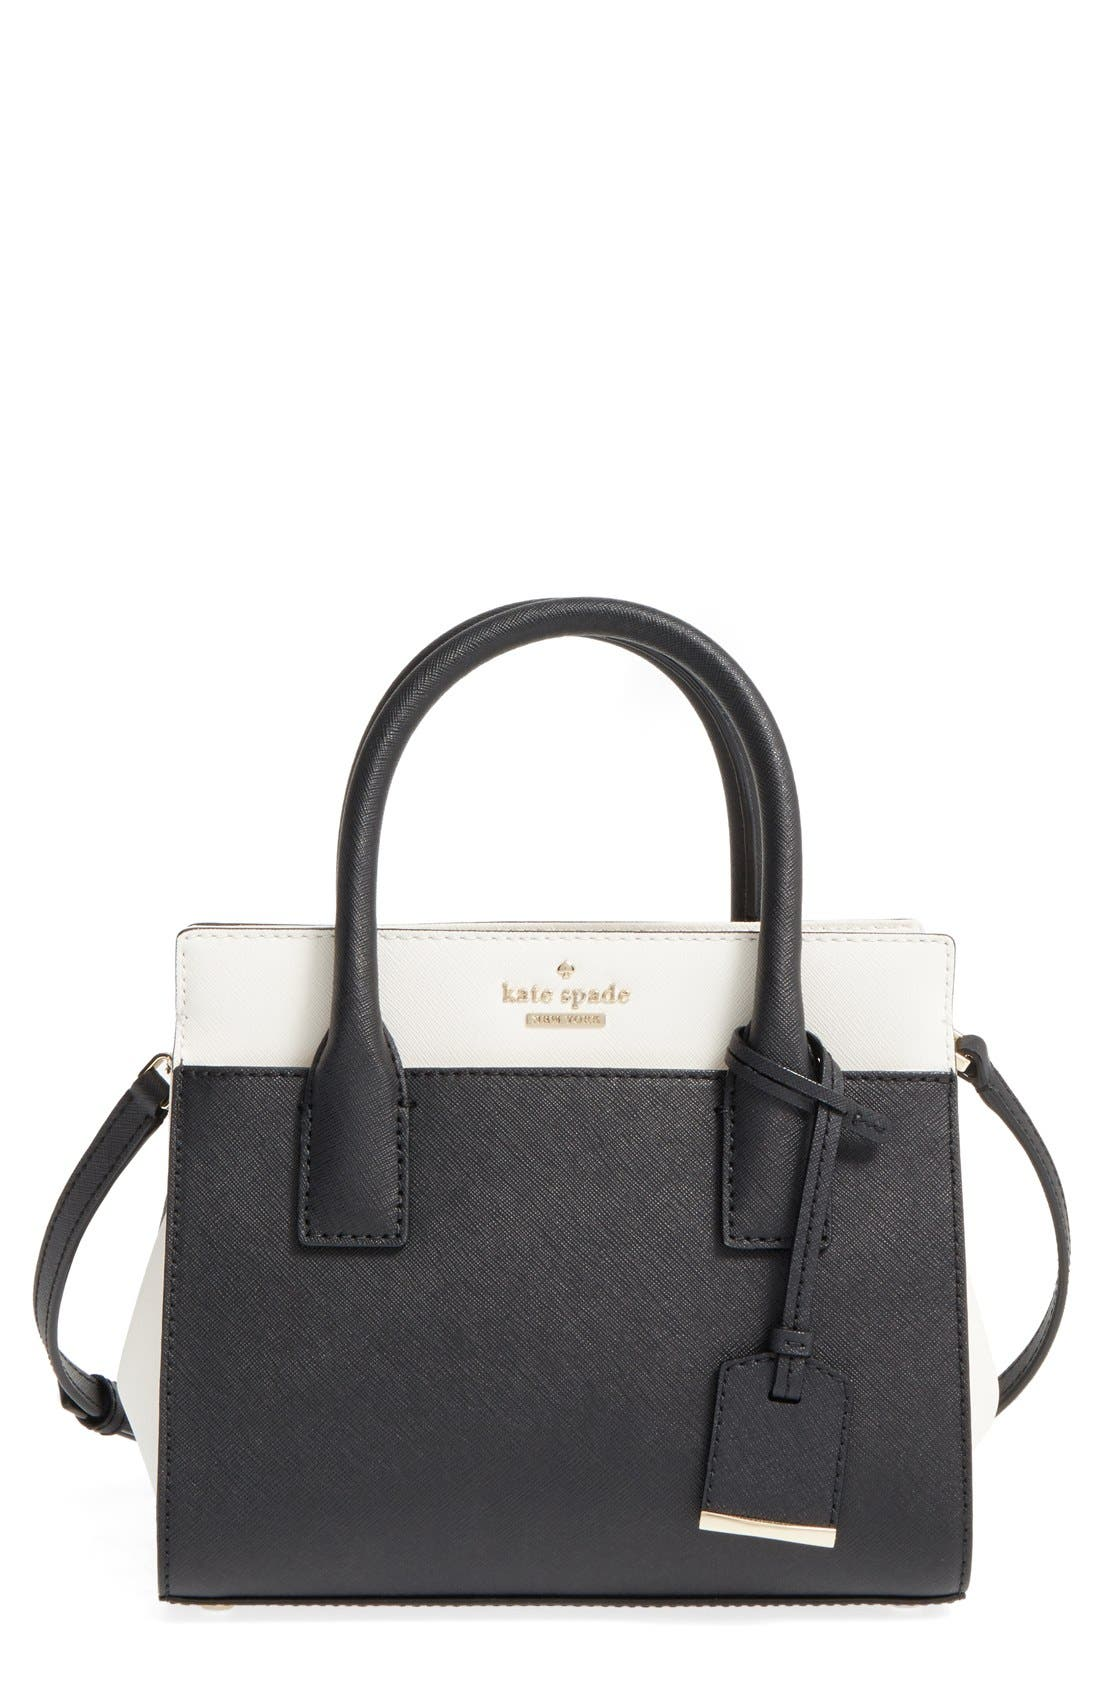 Alternate Image 1 Selected - kate spade new york 'cameron street - mini candace' leather satchel